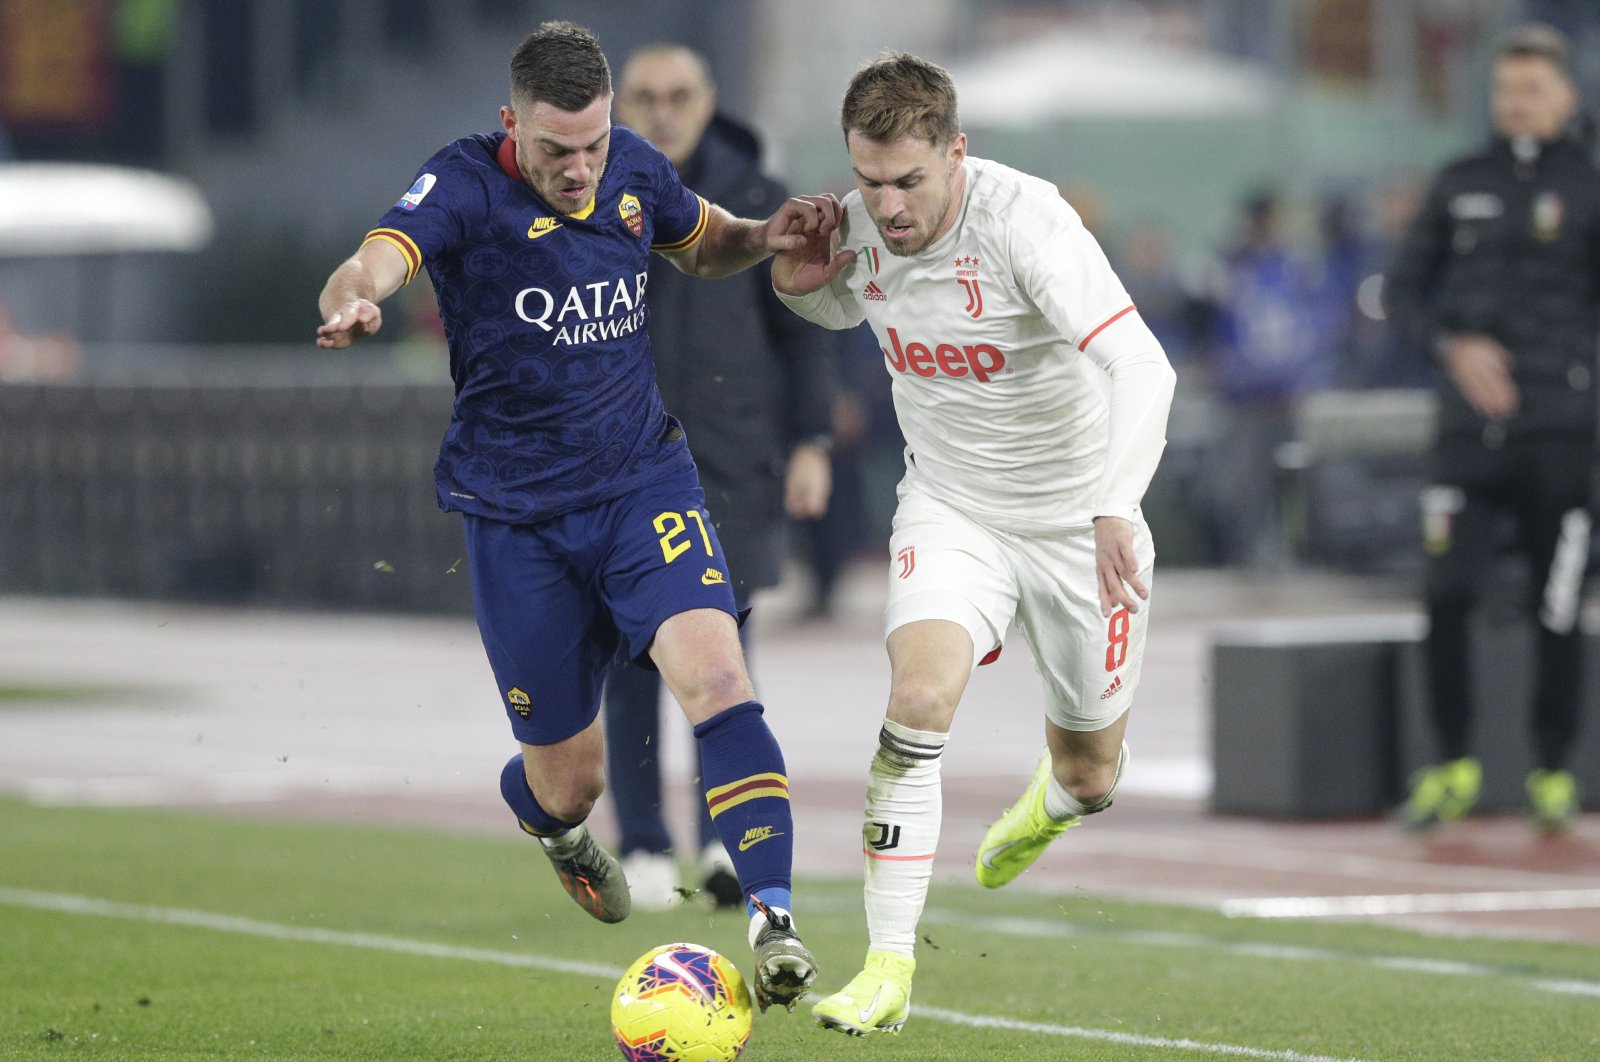 Roma's Jordan Veretout, left, and Juventus' Aaron Ramsey challenge for the ball during a Serie A match in Rome, Italy, Jan. 12, 2020. (AP Photo)